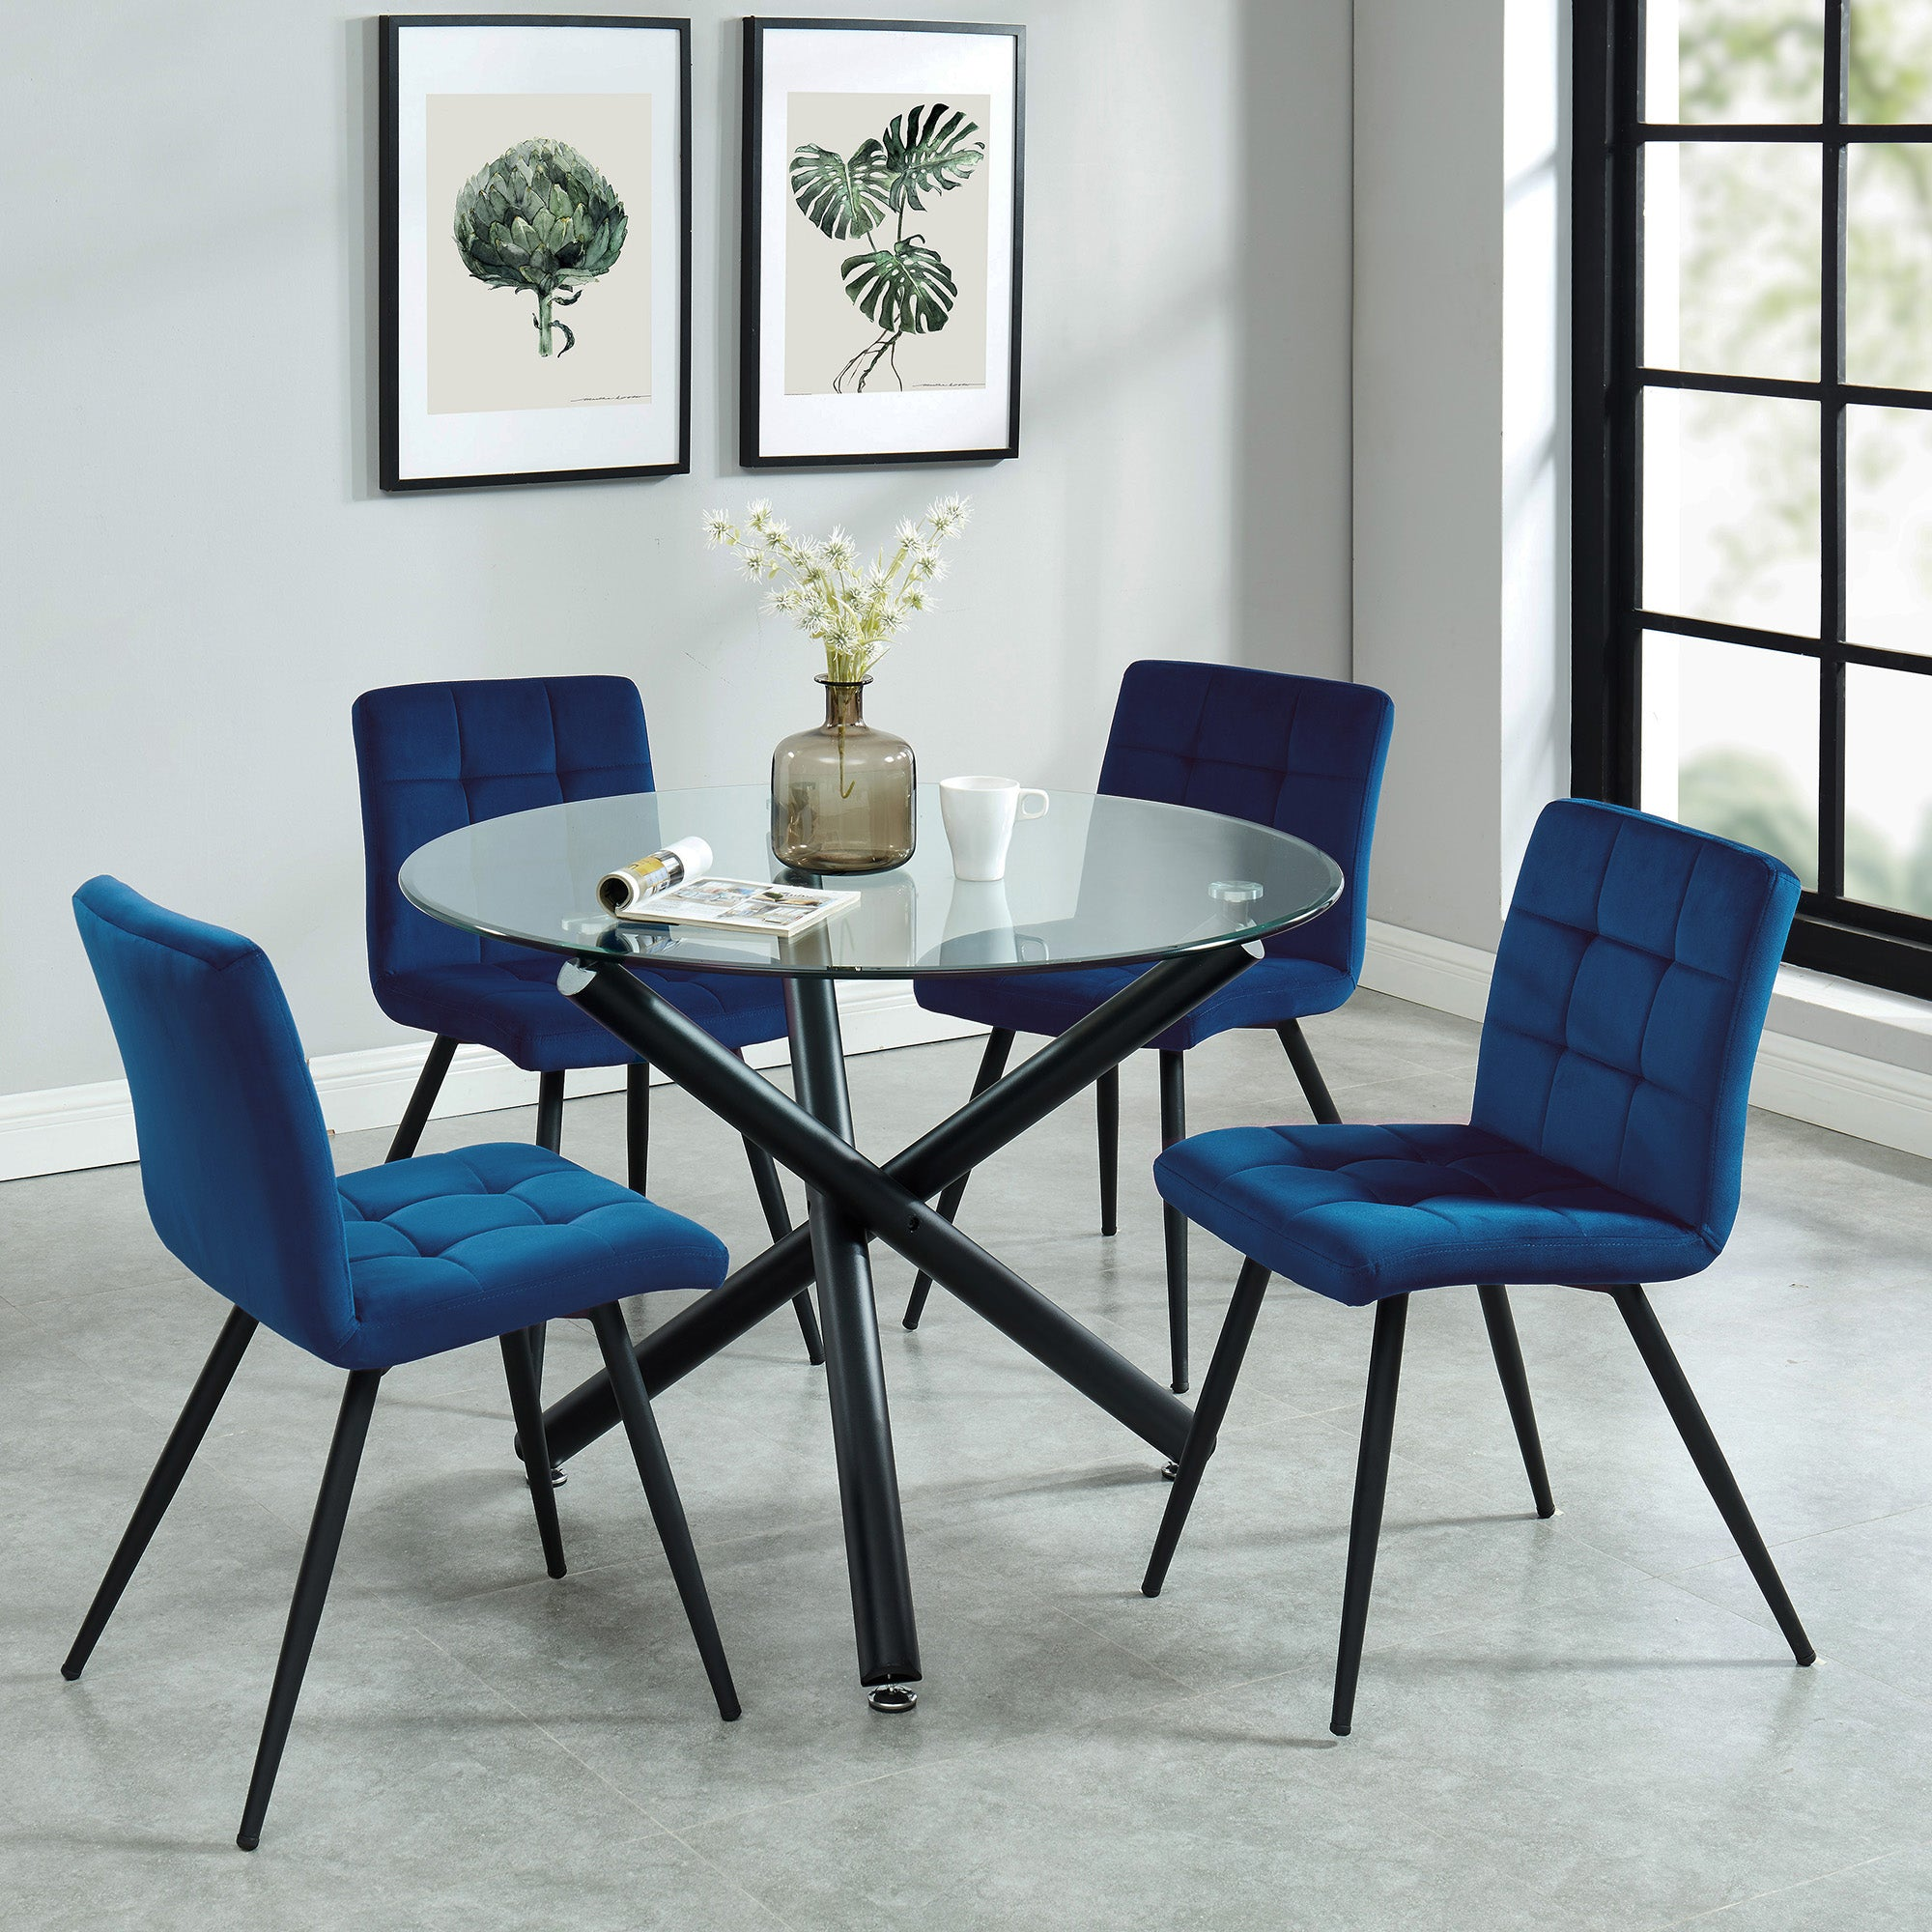 Suzette 5pc Dining Set, Black/Blue